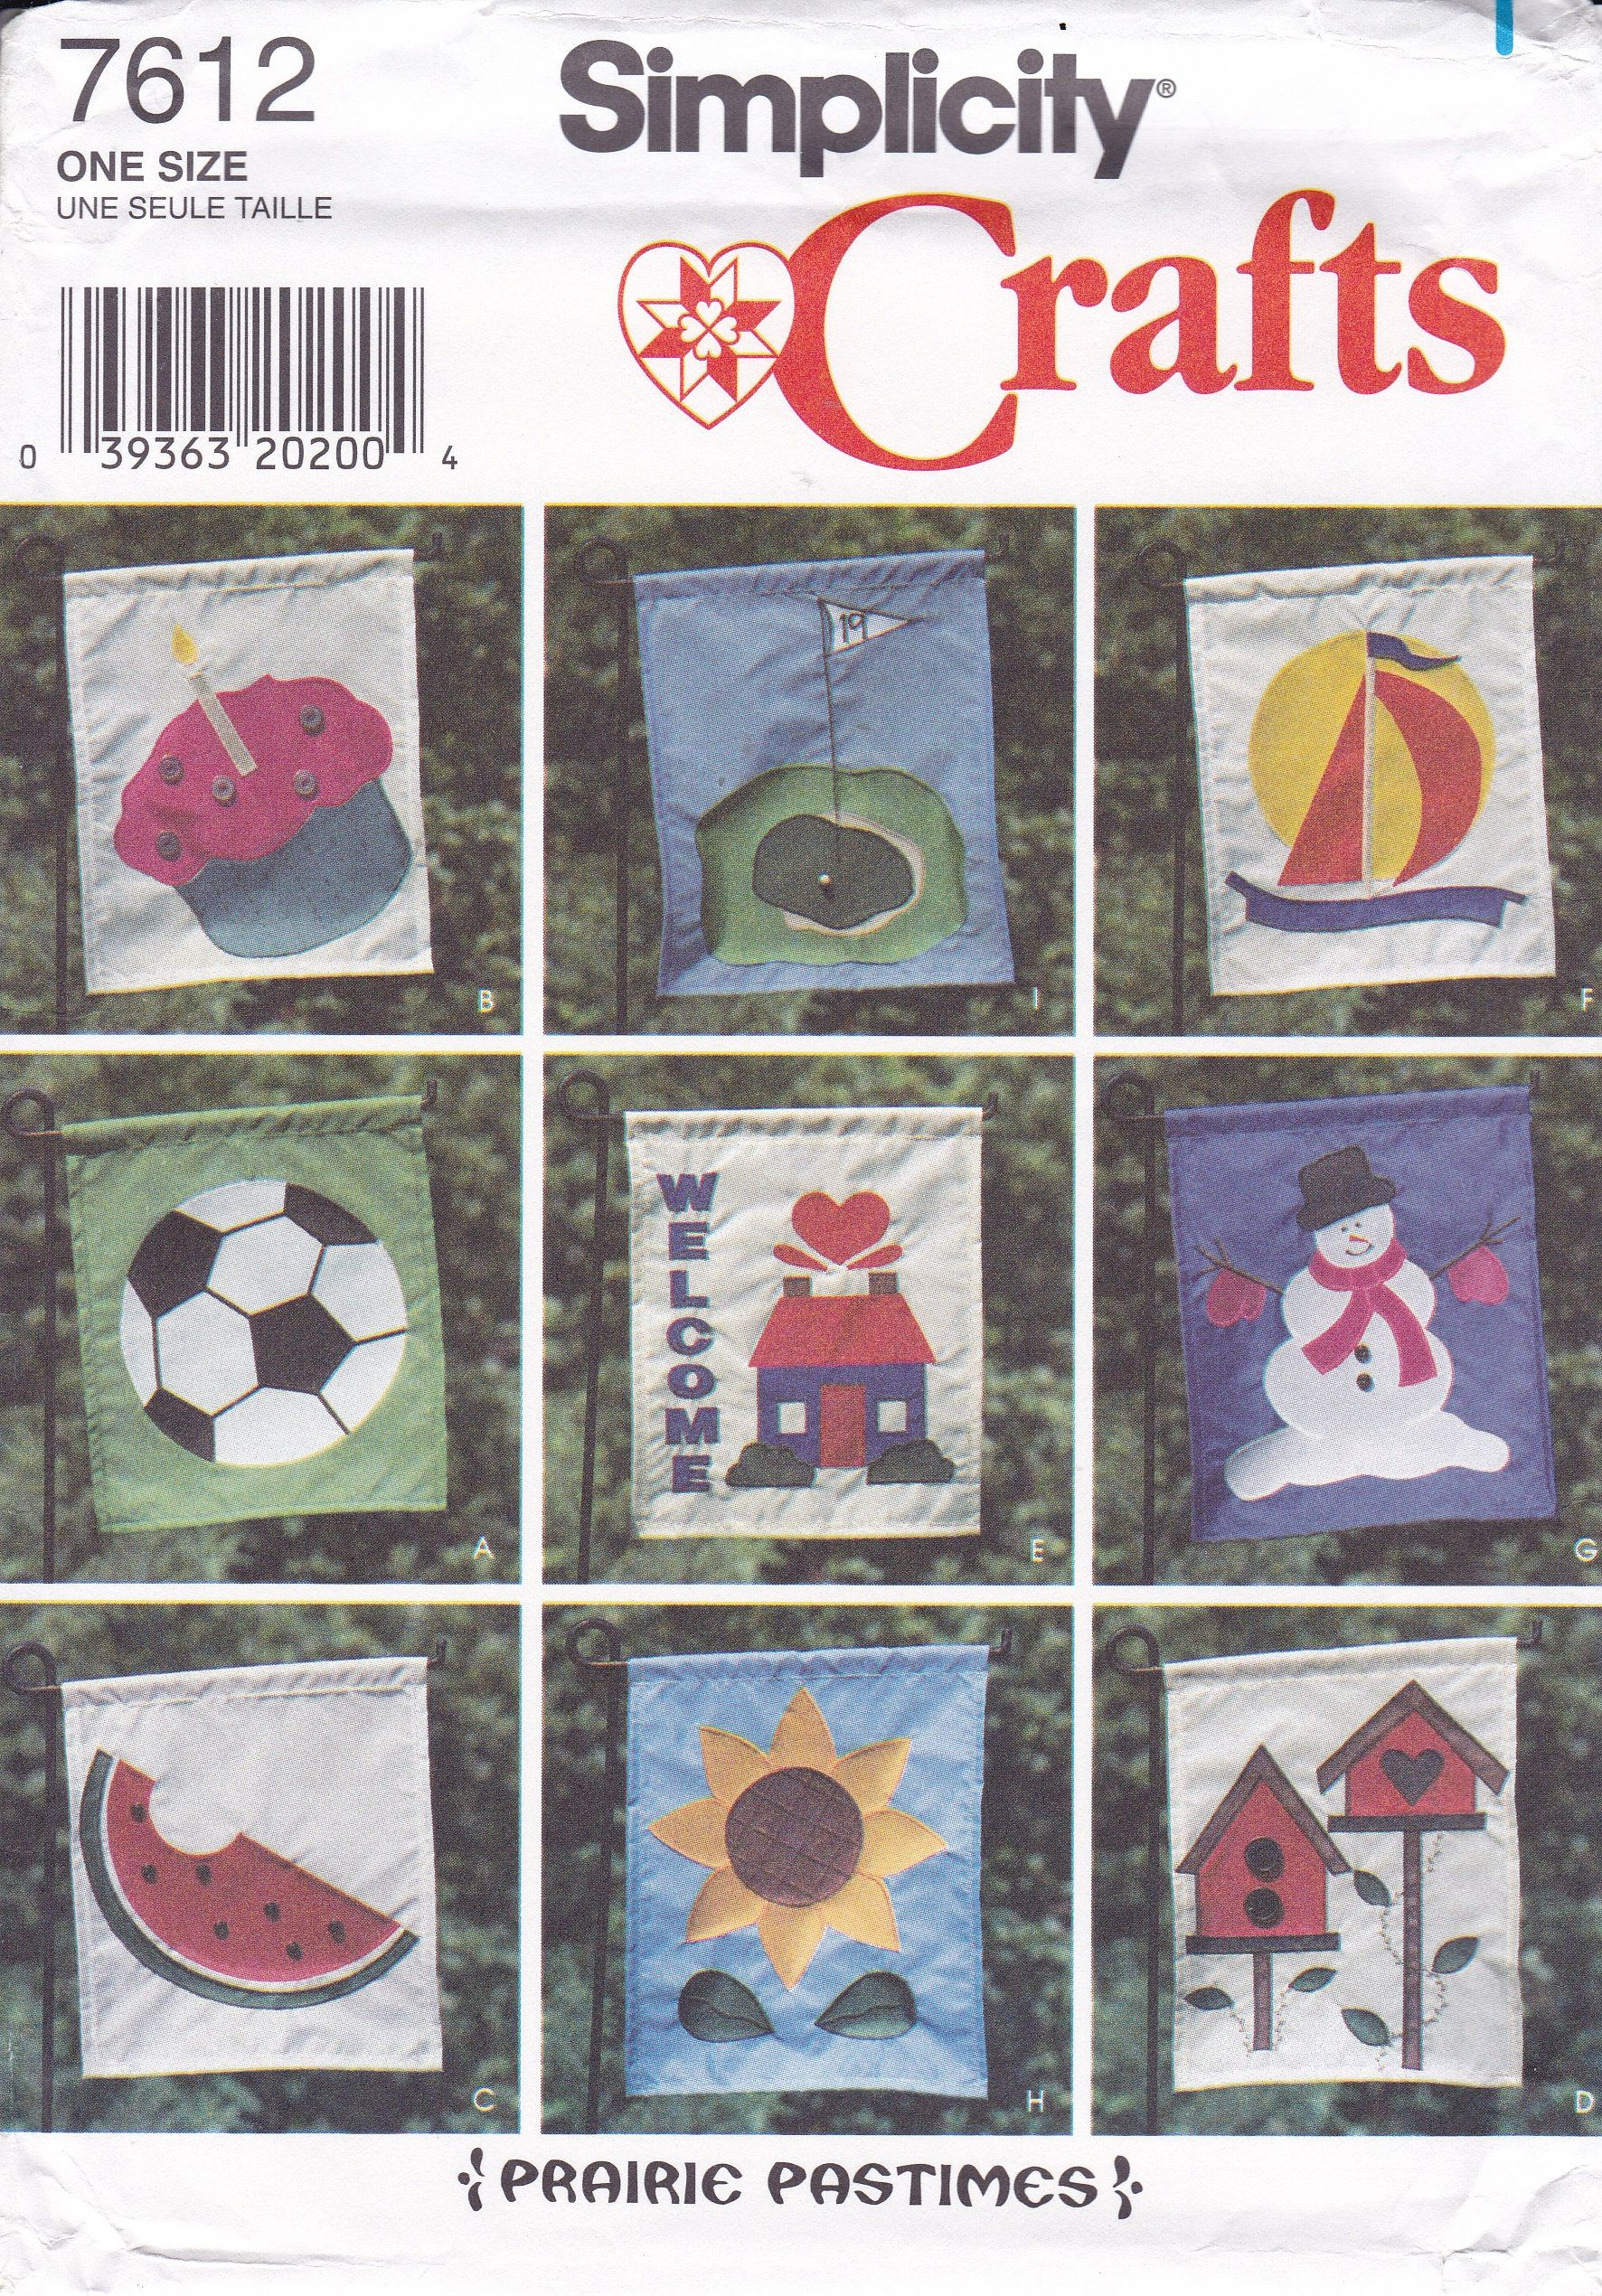 Free Us Ship Simplicity 7612 Sewing Pattern Outdoor Lawn Yard Garden Flag Lique Birthday Golf Soccer Welcome Snowman Sunflower Birdhouse By Lanetzliving